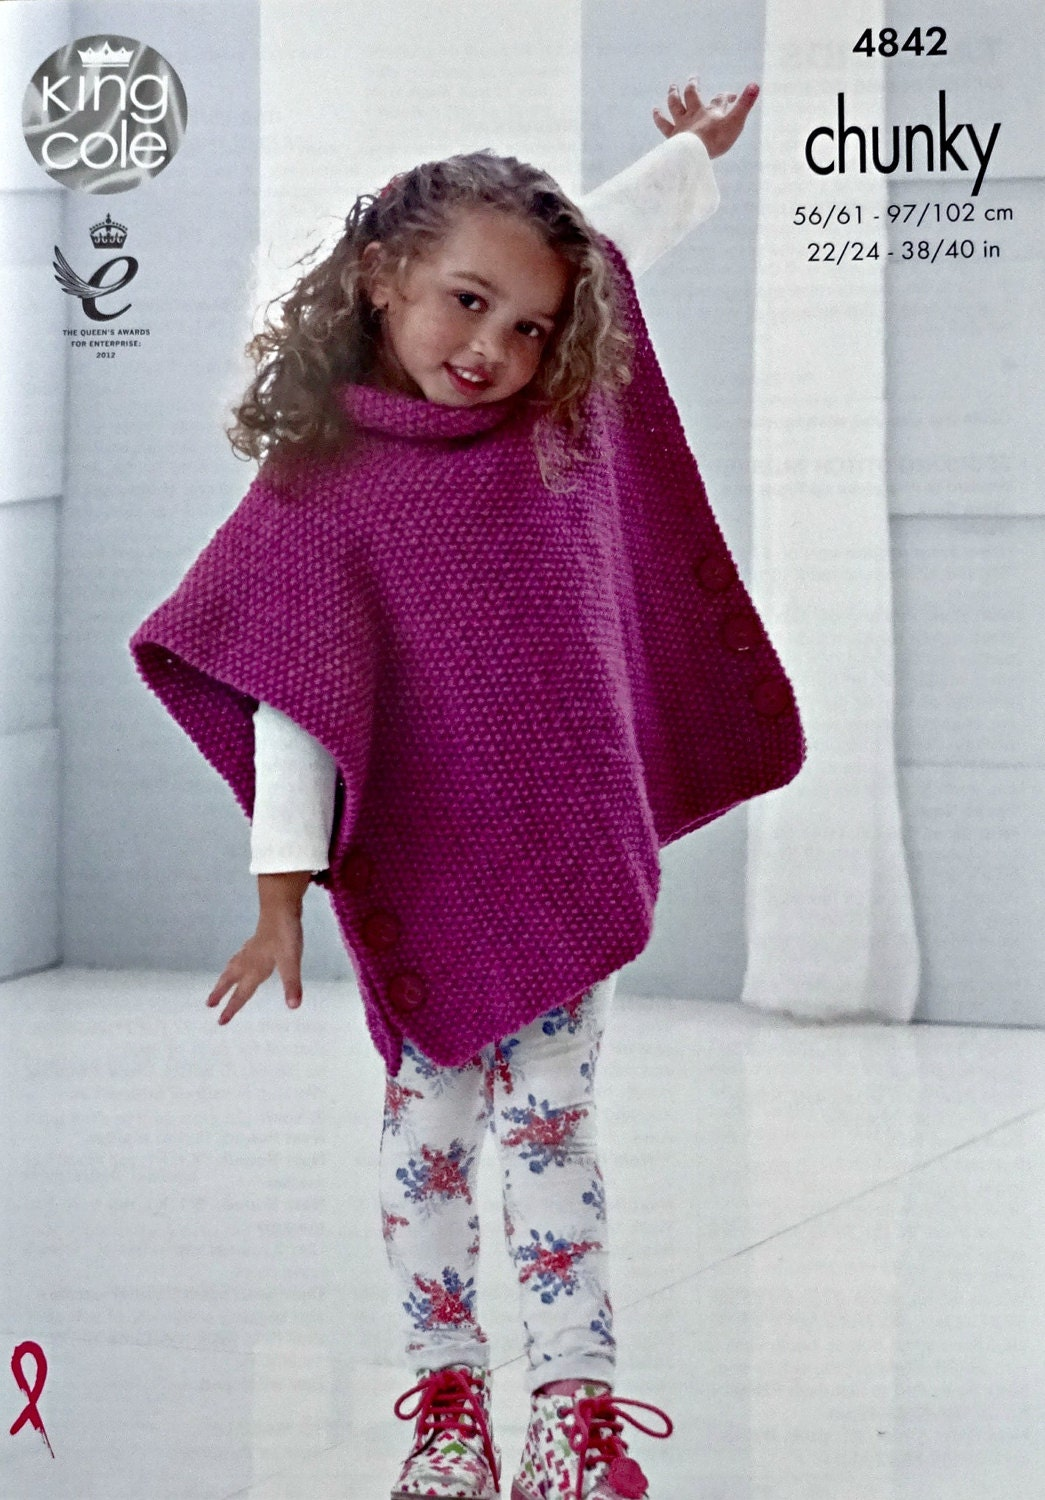 Girls knitting pattern k4842 girlsladies very easy knit moss girls knitting pattern k4842 girlsladies very easy knit moss stitch tabbardponcho knitting pattern chunky bulky king cole bankloansurffo Gallery